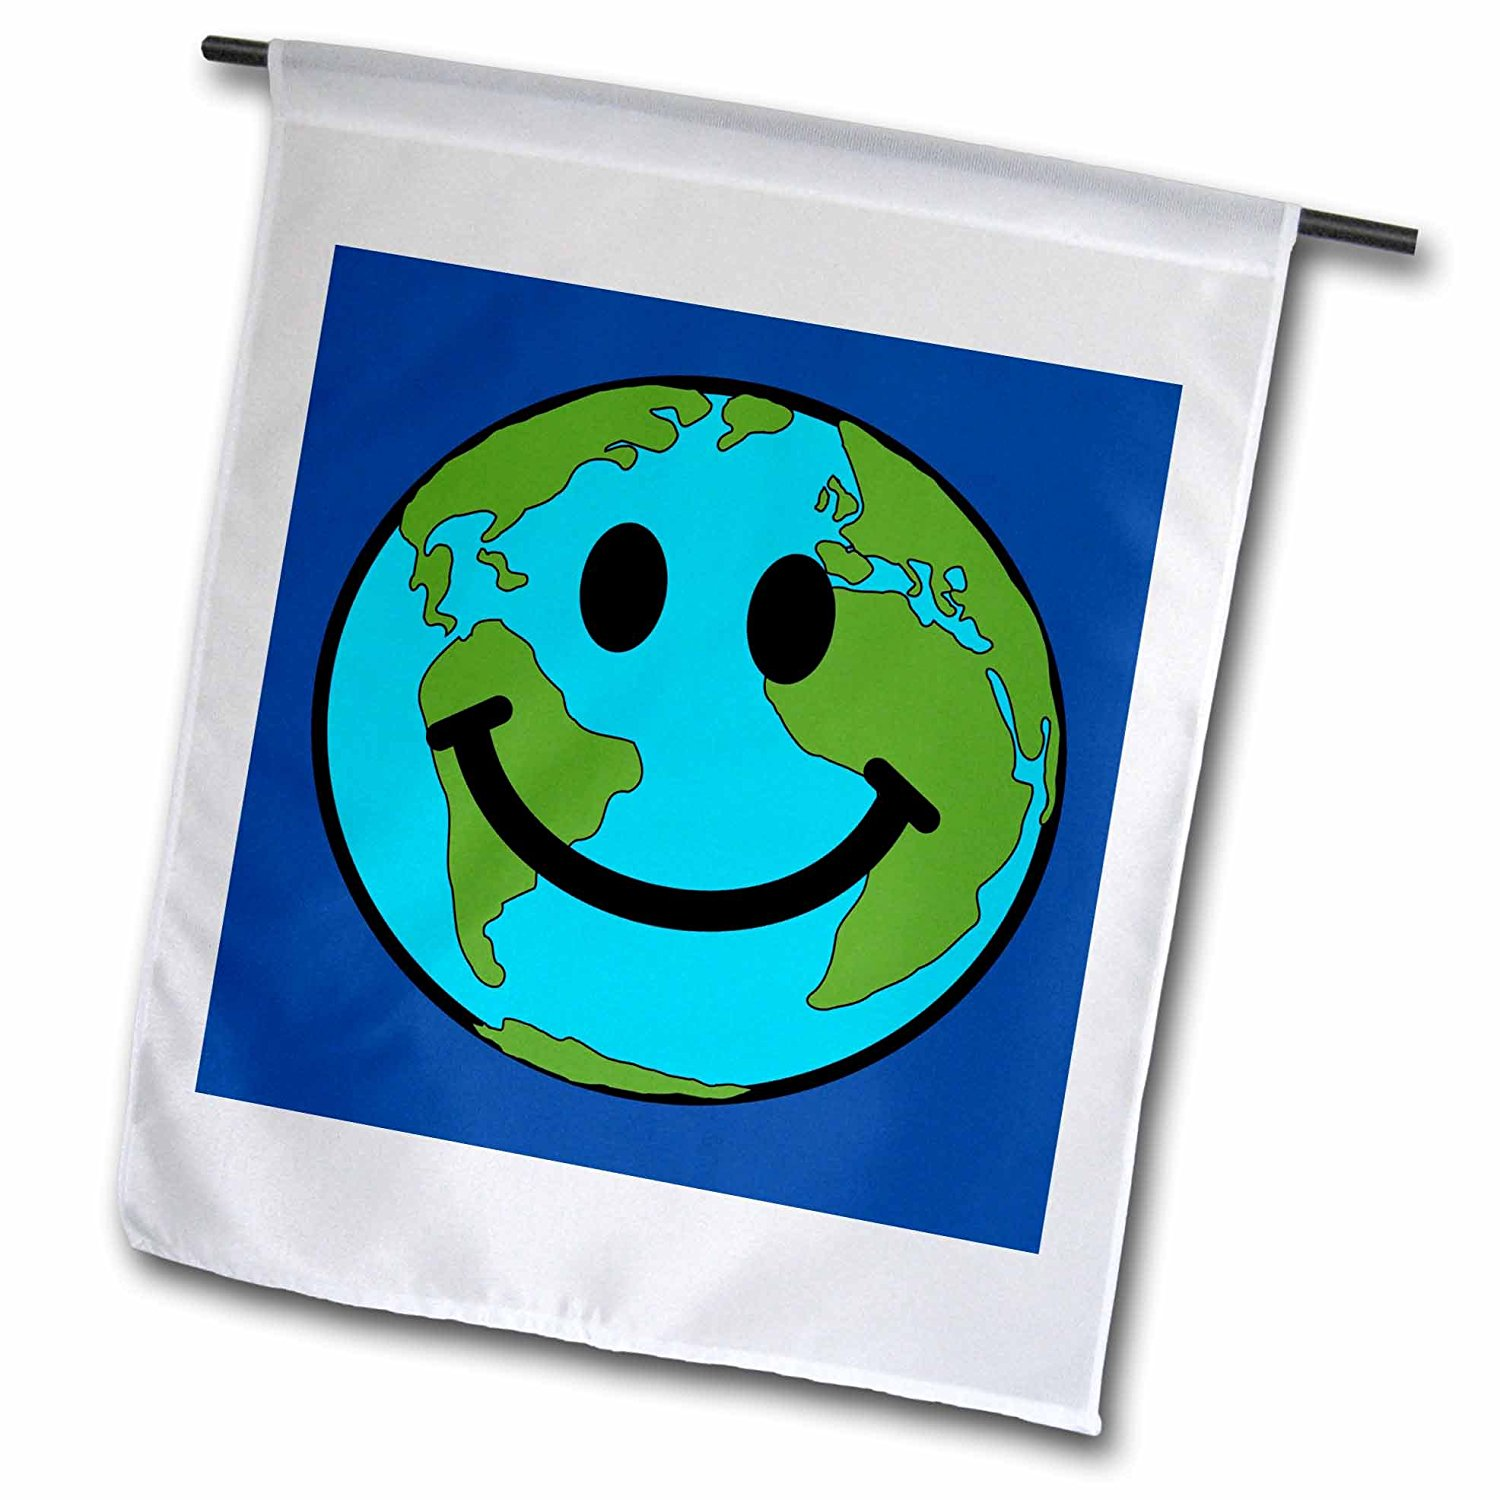 Buy 3drose ht766661 planet earth smiley face happy world globe inspirationzstore smiley face collection planet earth smiley face happy world globe earth day buycottarizona